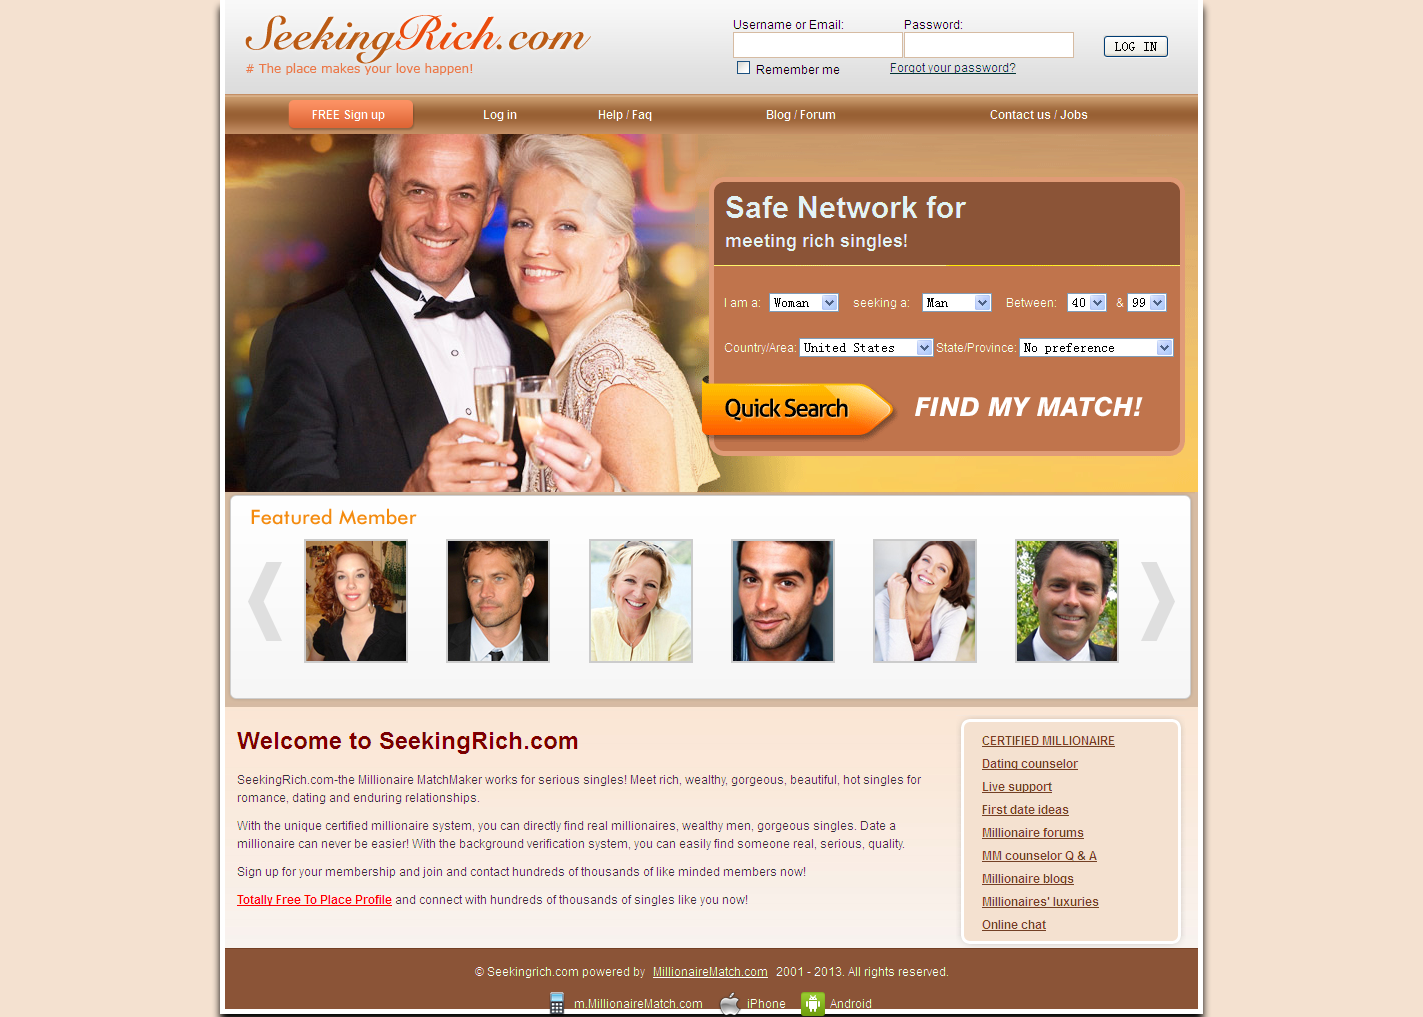 fiddletown singles dating site Local horny sexy girls looking for nice guys chat with singles and find your match after browsing member pictures from all over the world our site is the worlds free online personals and dating service.